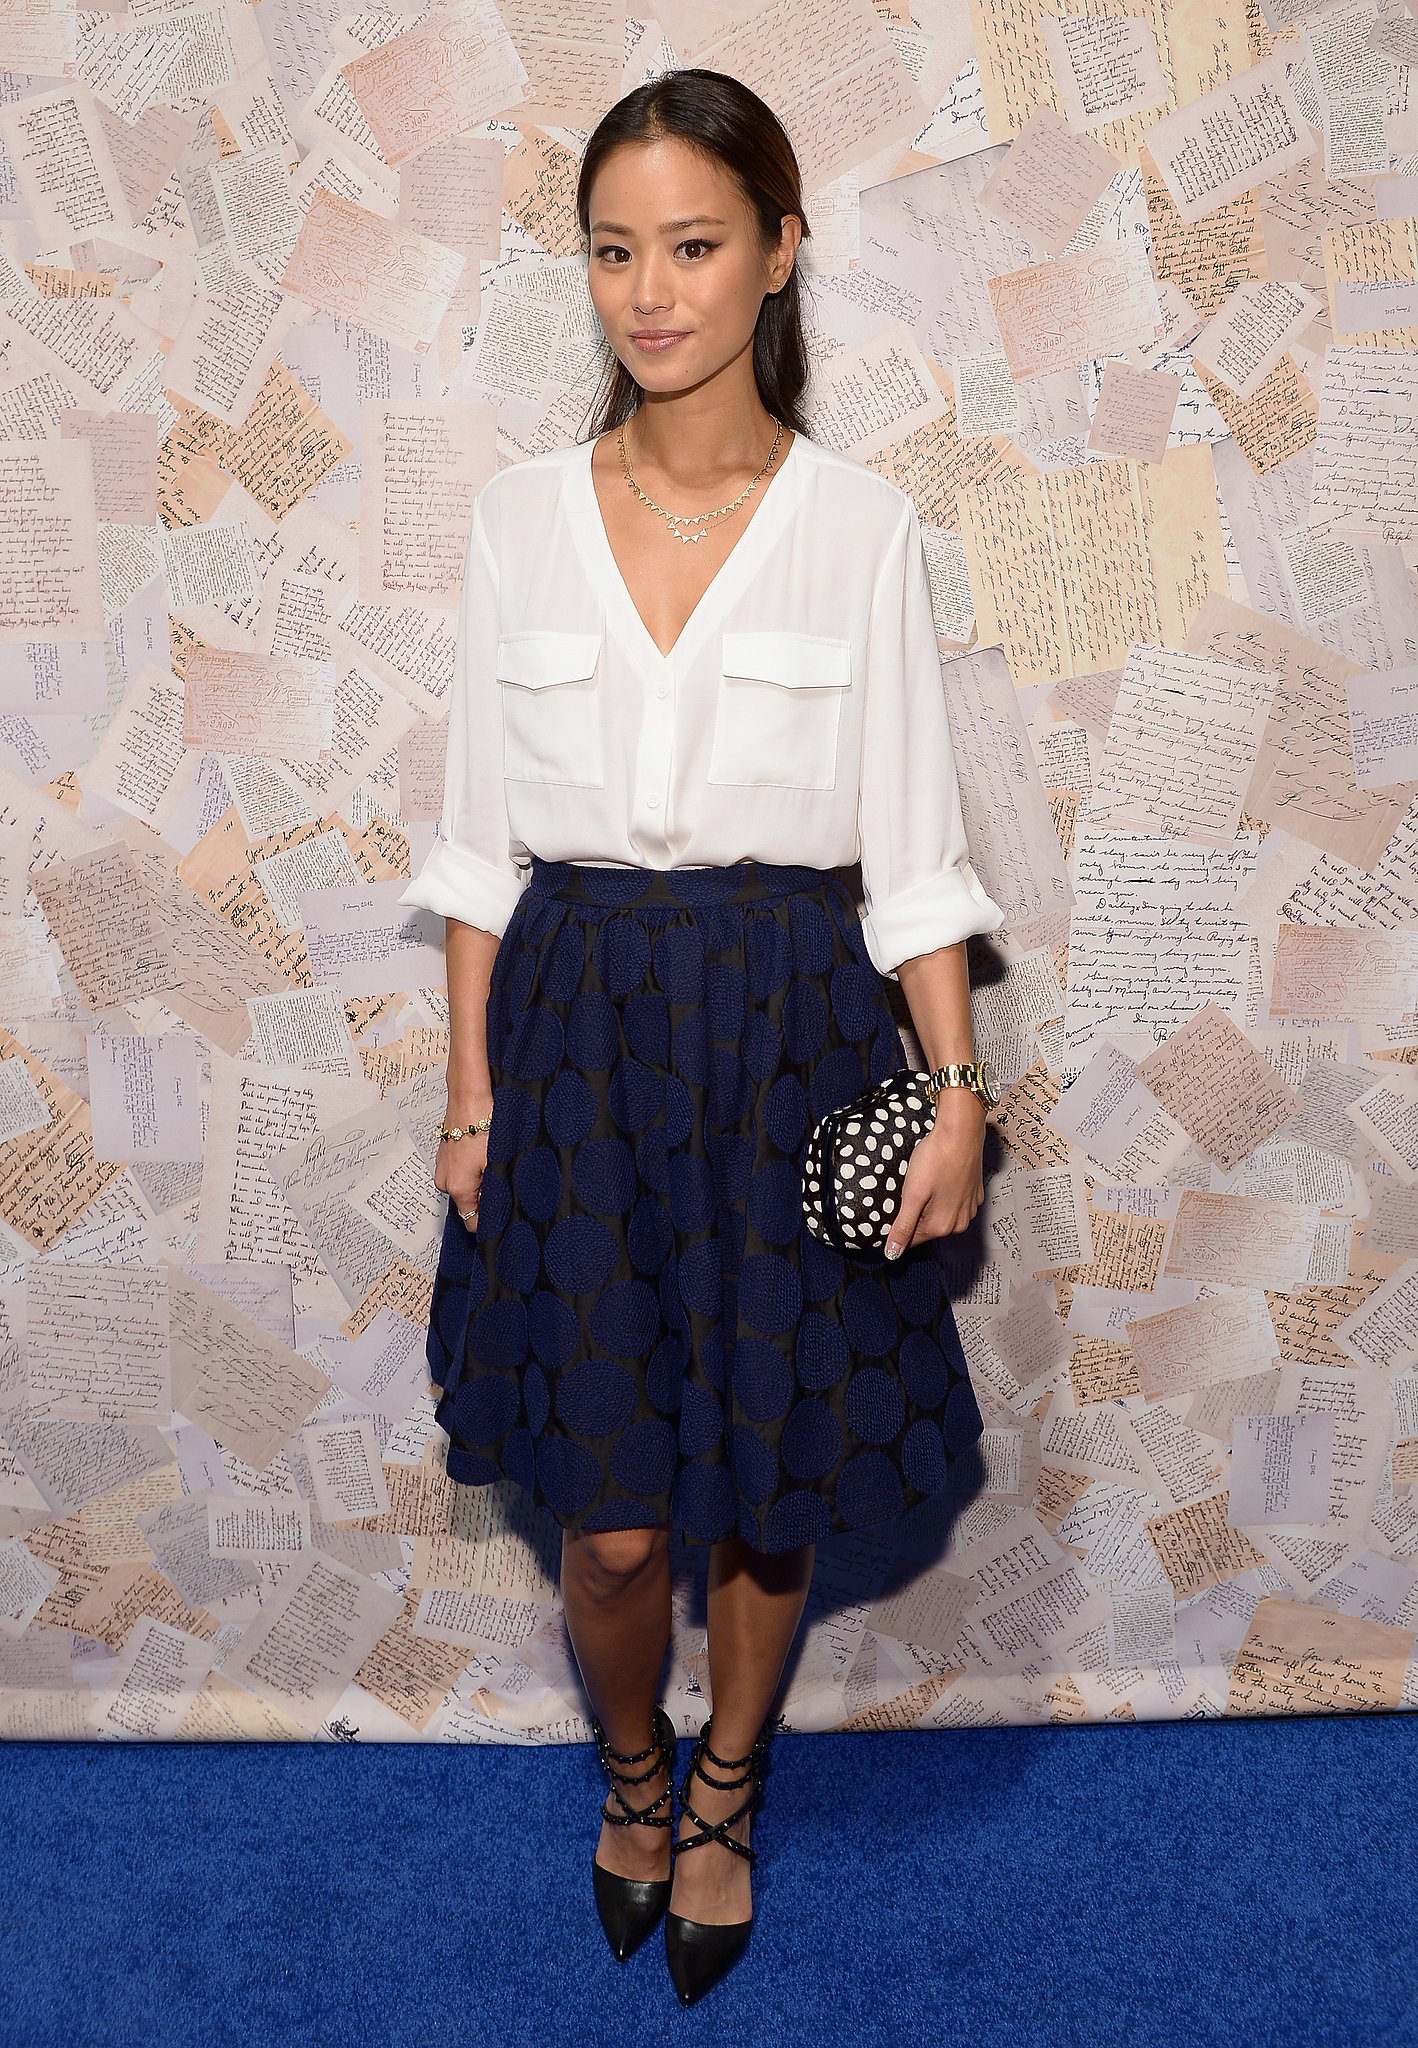 Jamie Chung was soft in a white blouse and a navy flowy skirt at the Alice + Olivia presentation. She added edge via a dotted clutch and studded strappy pumps, both by Alice + Olivia.